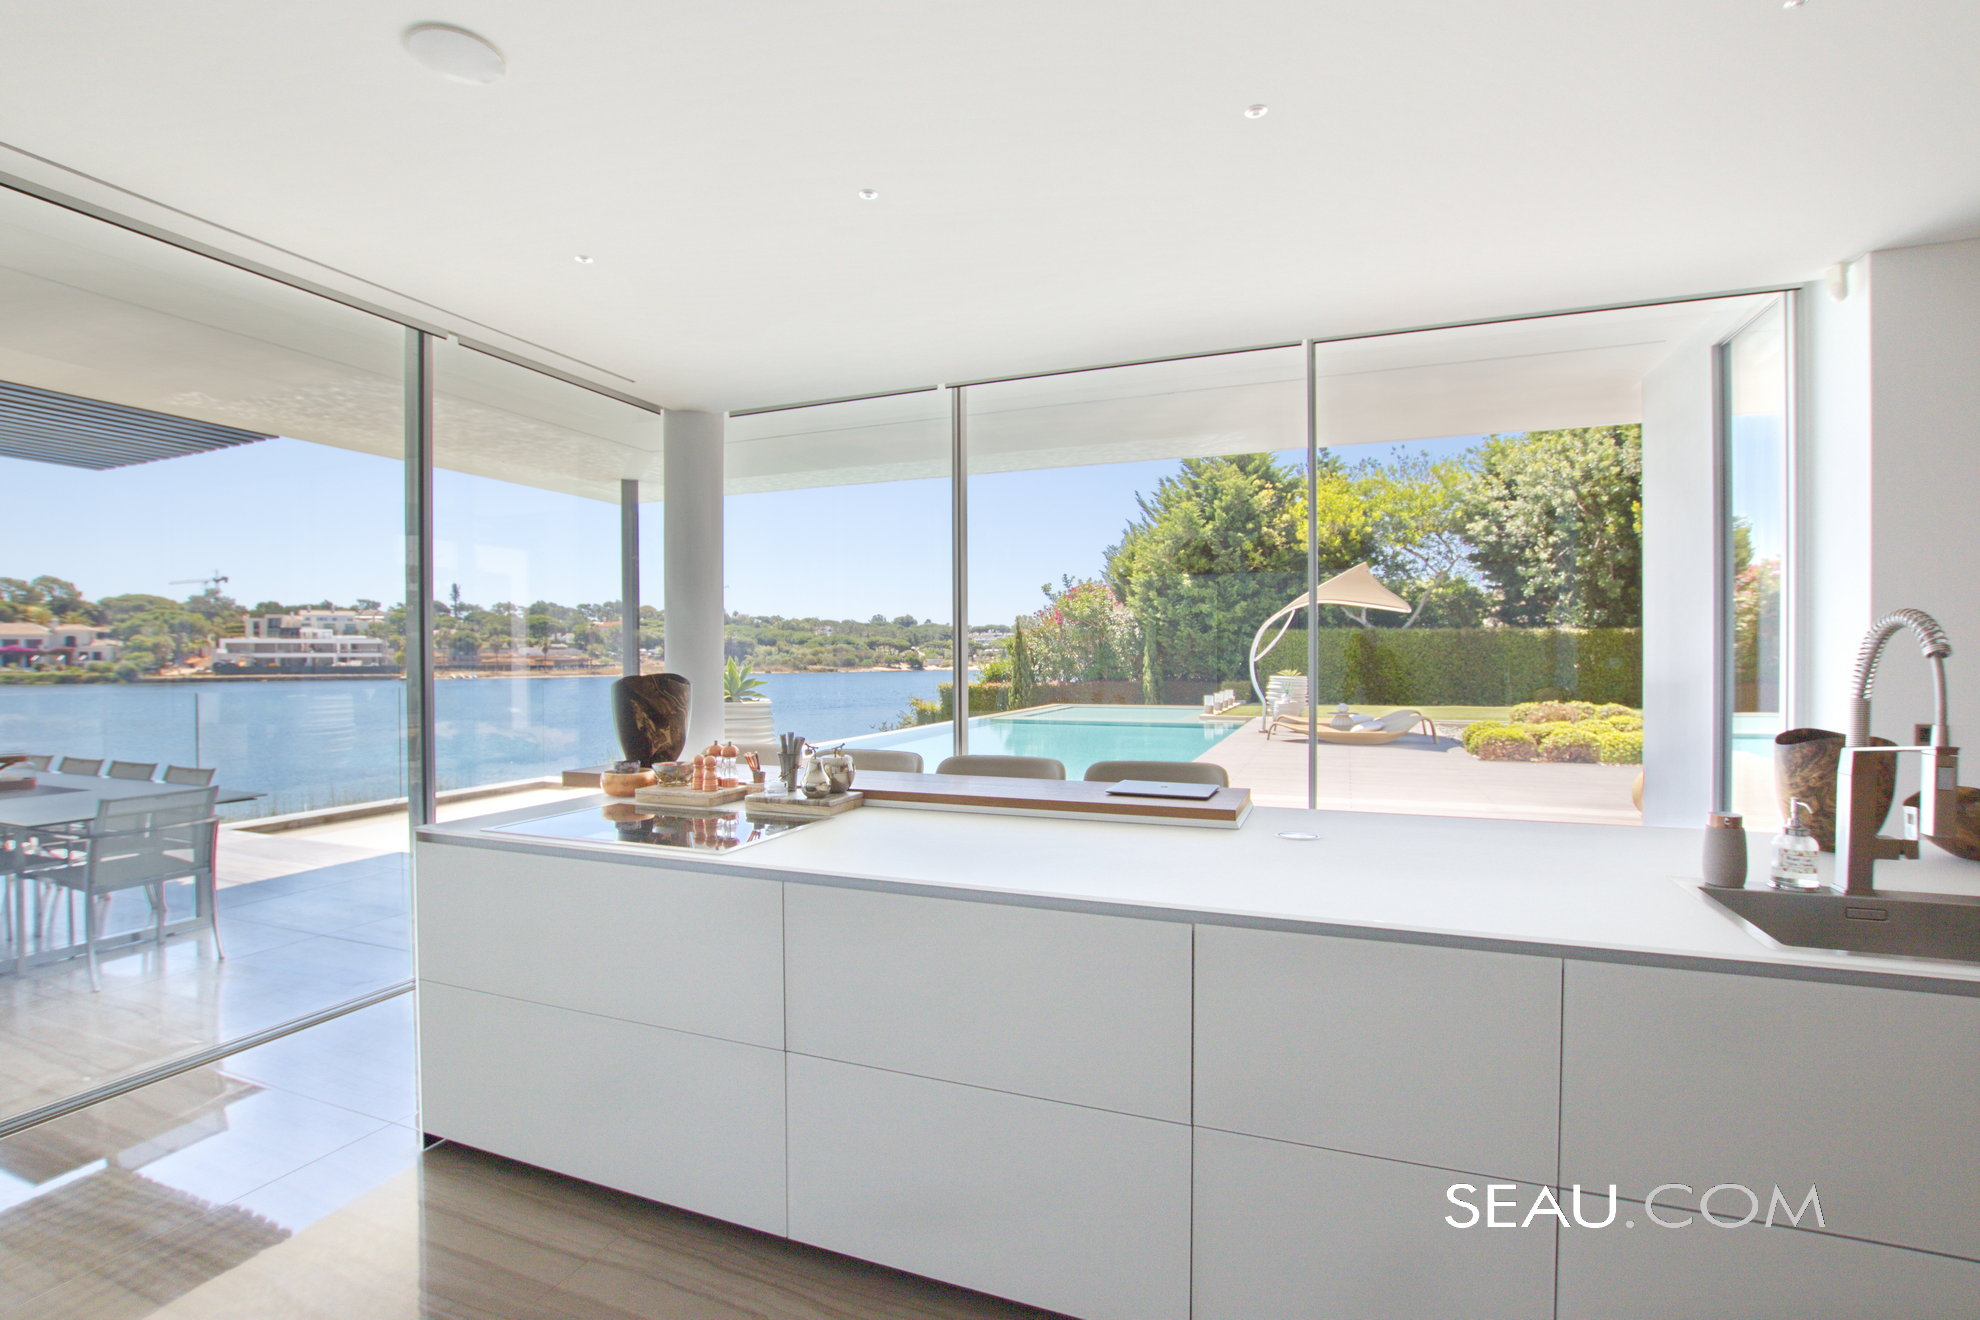 The clean lines Valcucine kitchen, equipped with Gaggenau and Smeg appliances, is in a privileged location making it a pleasure to cook! Amazing views overlooking the garden, pool area and the lake. Direct access to the outdoors and barbecue area.